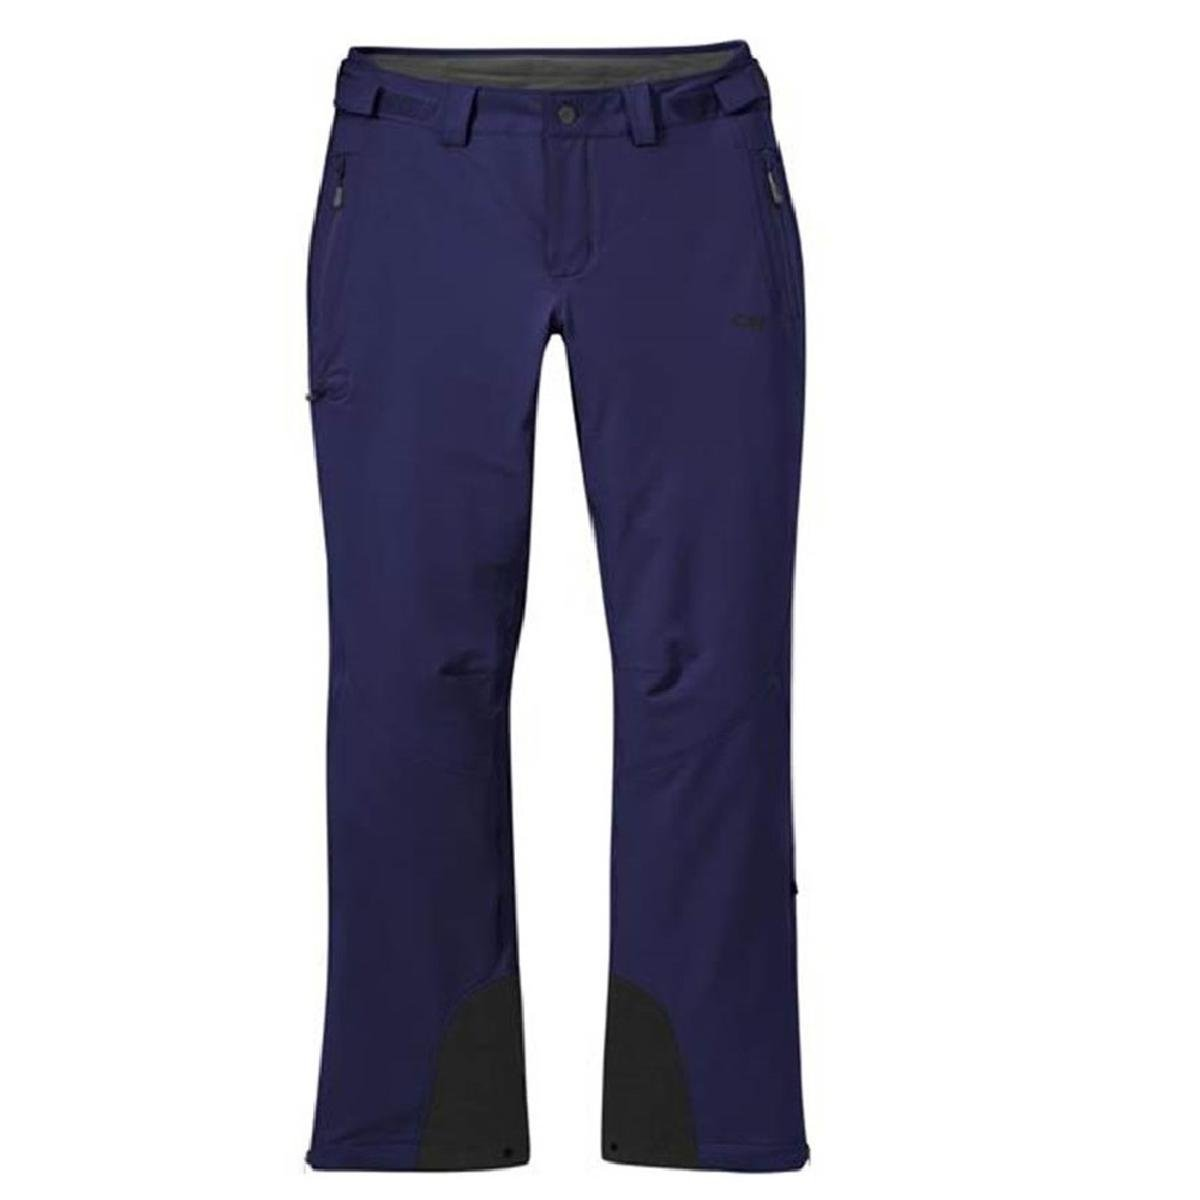 OR Cirque II Women's Pants